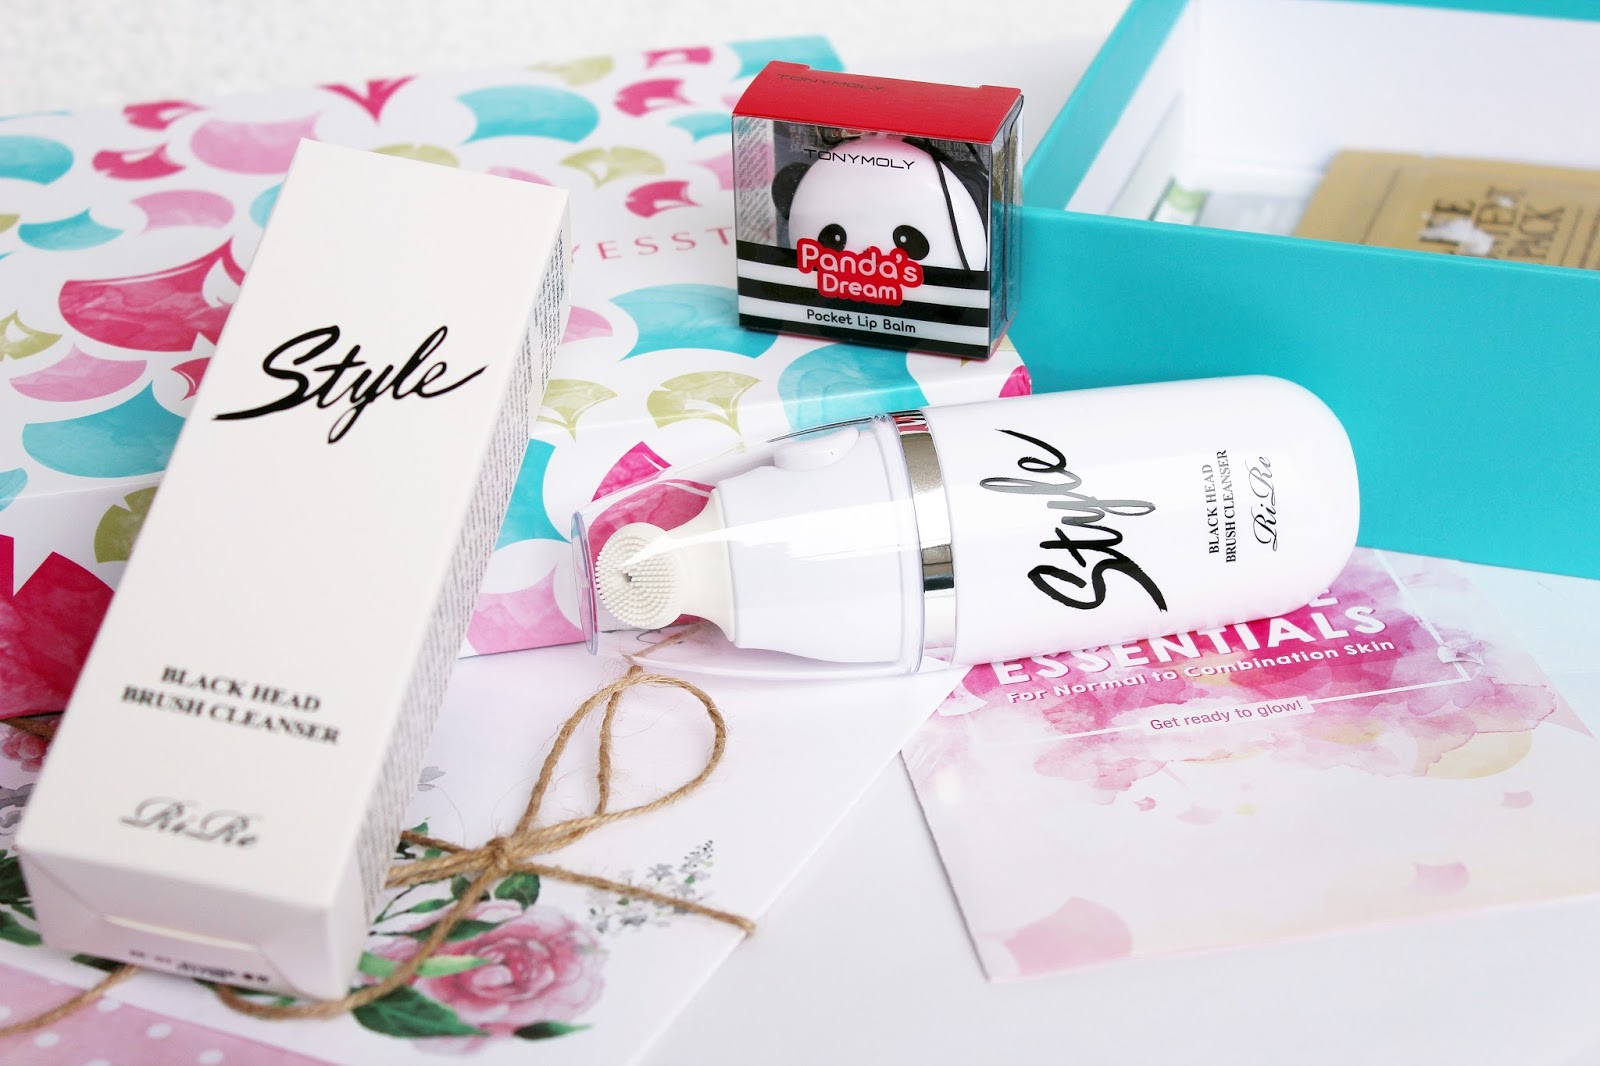 AGATHA, Benton, Cosrx, Etude House, Korea, Korean Box, Natural Cosmetics, REPIEL, Rire, Tony Moly, Night/Day Cream, Mask, Sheet Mask, Toner, Emulsion, Cleansing, Lipstick, Hair conditioner, Yesstyle, Yesstyle box, Yesstyle beauty box, korean beauty box, yesstyle bloggers, ysbeautybox17